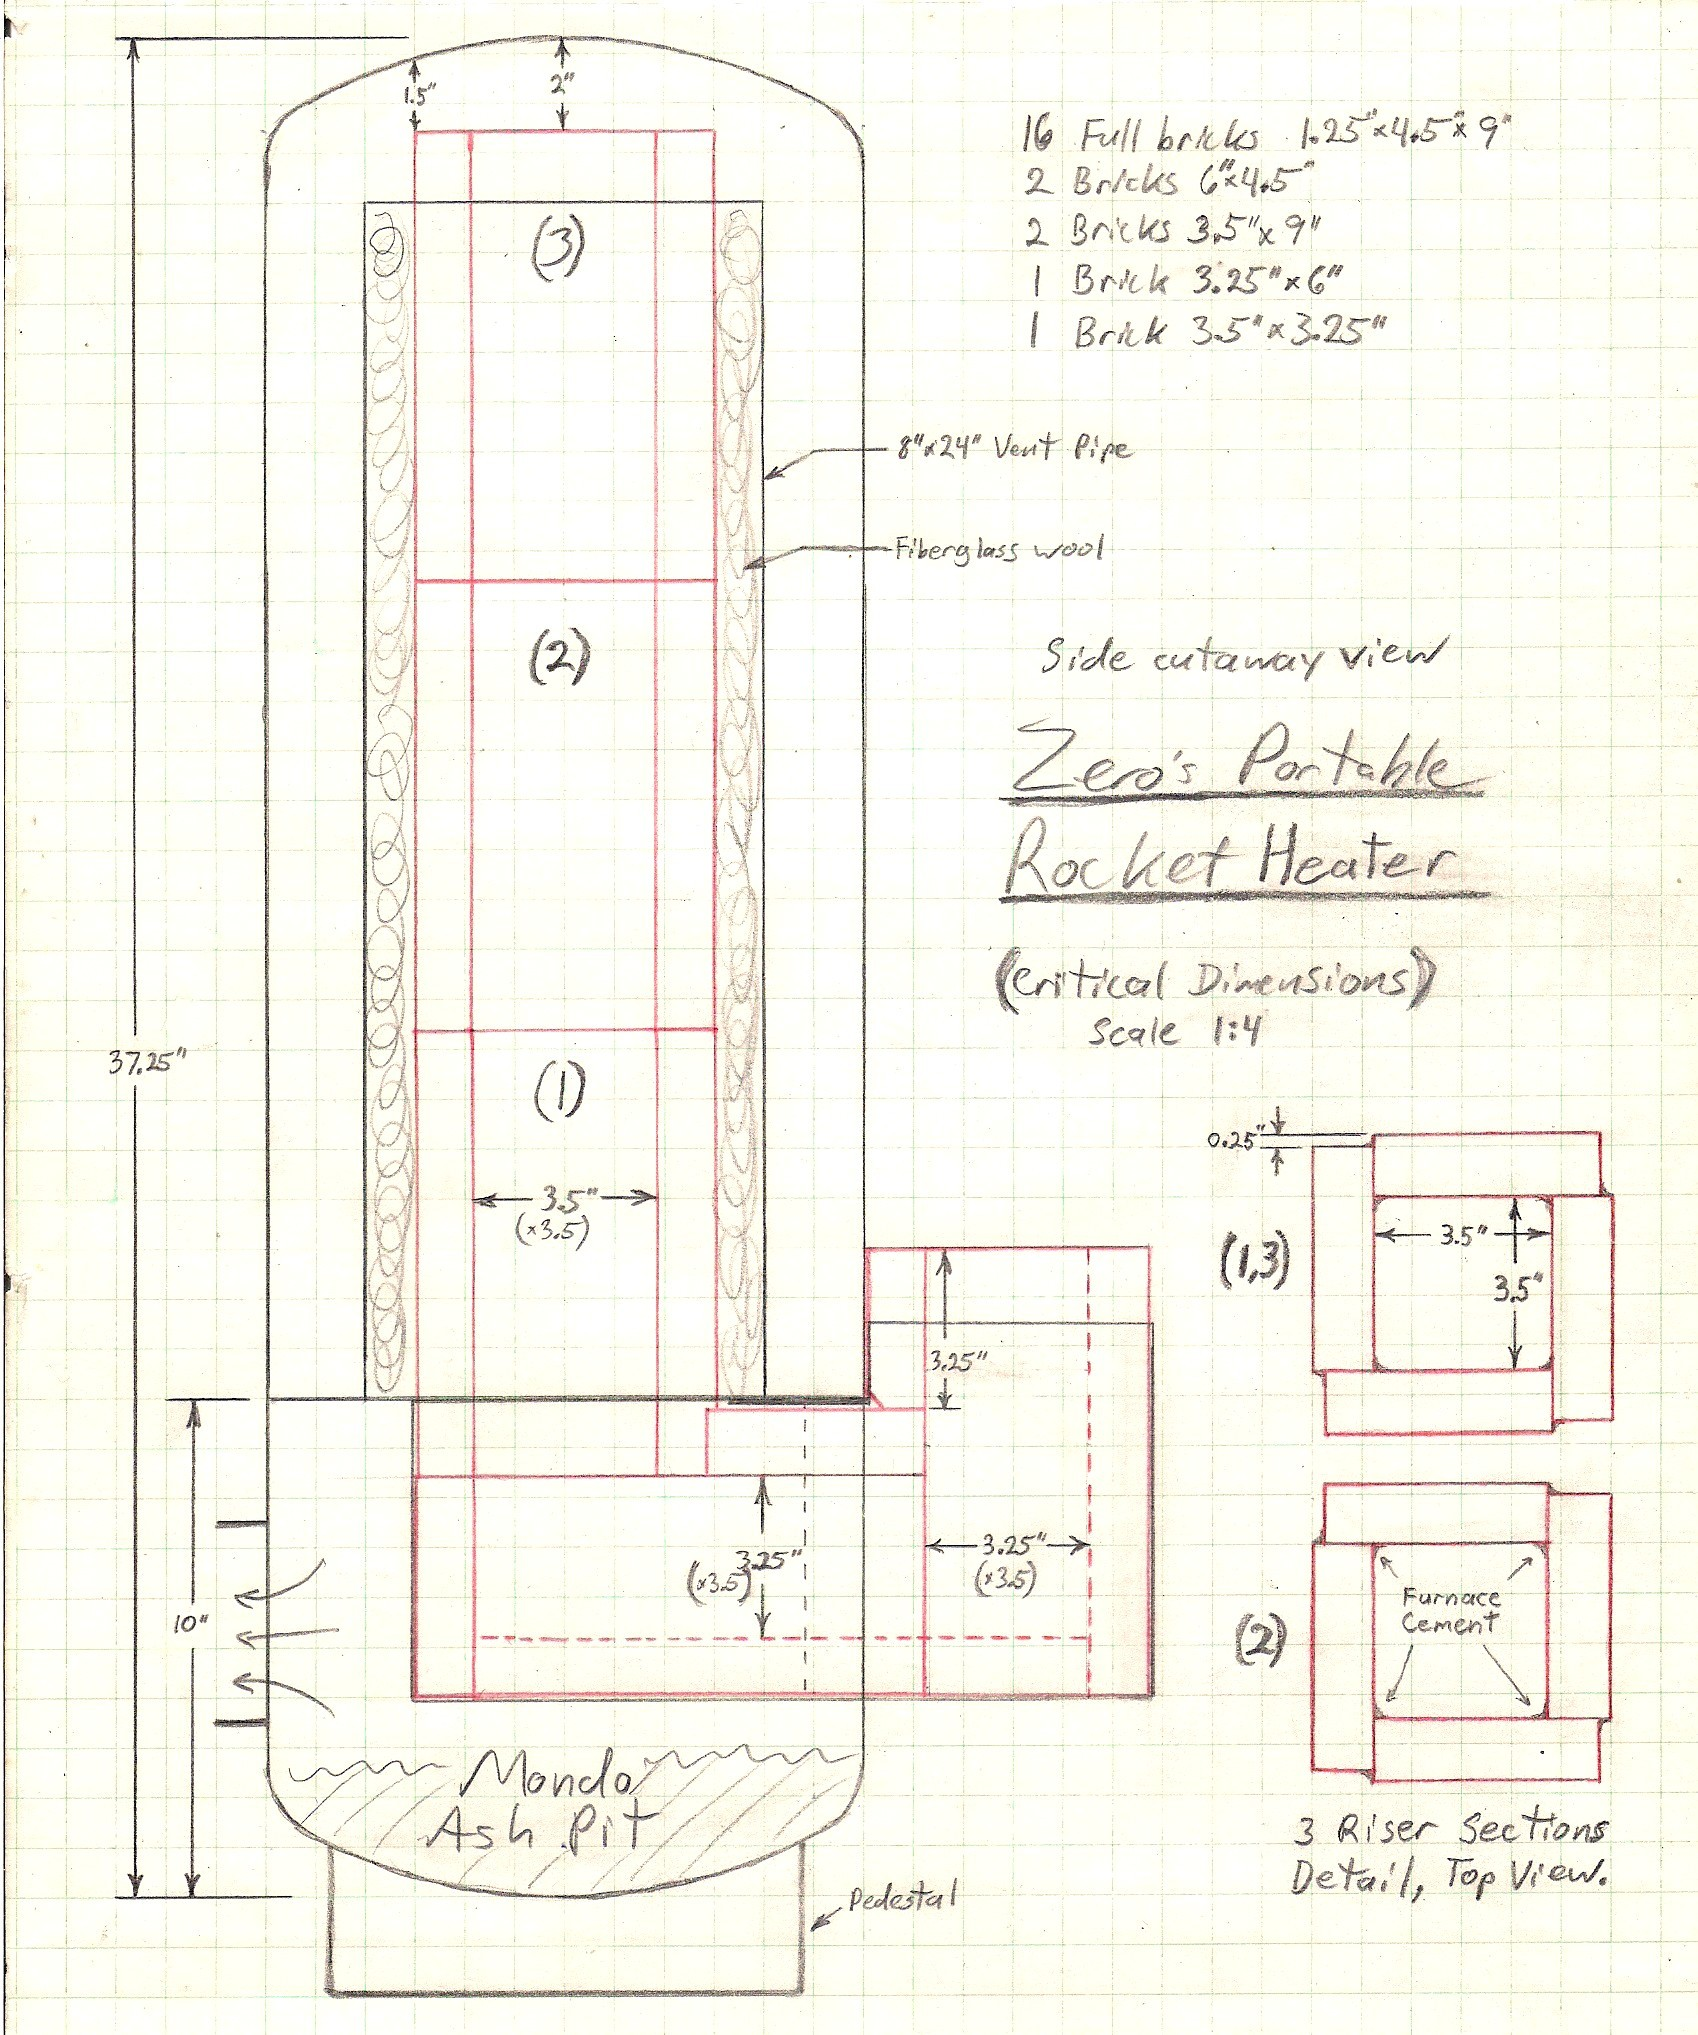 Rocket Stove Plans : Pin Rocket Stove Mass Heater Plans on Pinterest